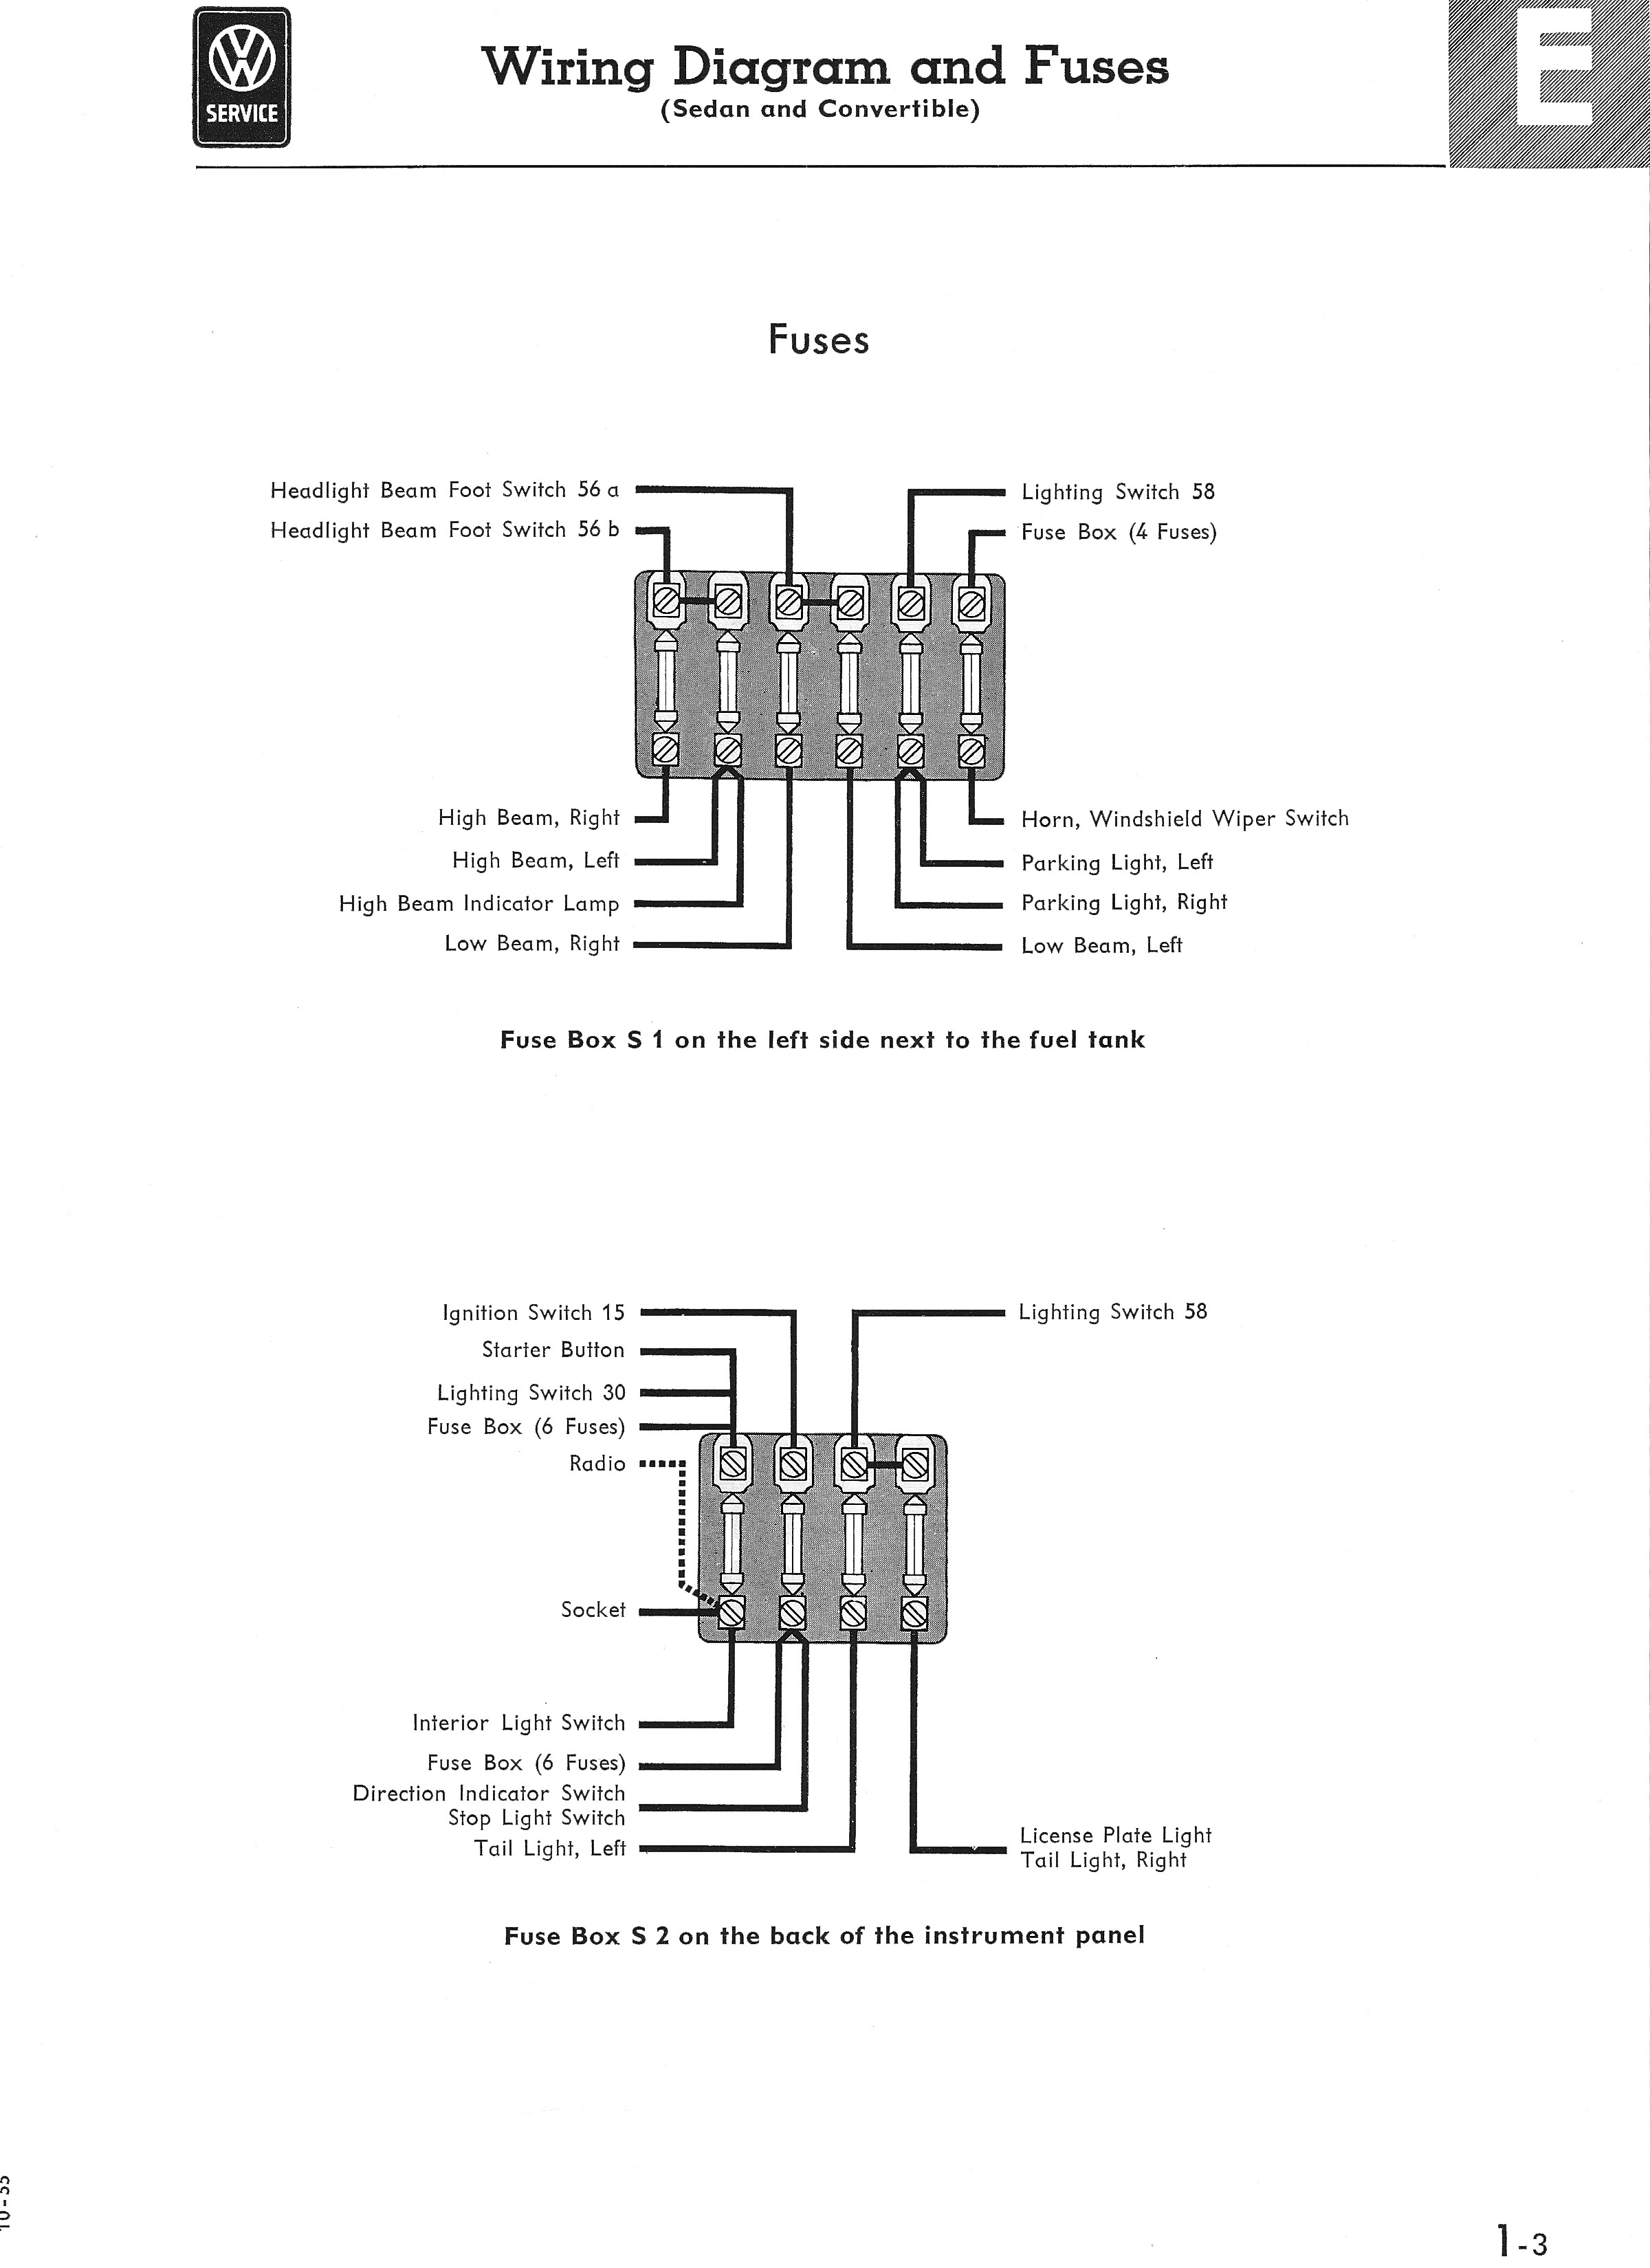 1996 Rover Mini Fuse Box Diagram Worksheet And Wiring For Ford E250 Thesamba Com Type 1 Diagrams Rh Explorer Panel E 250